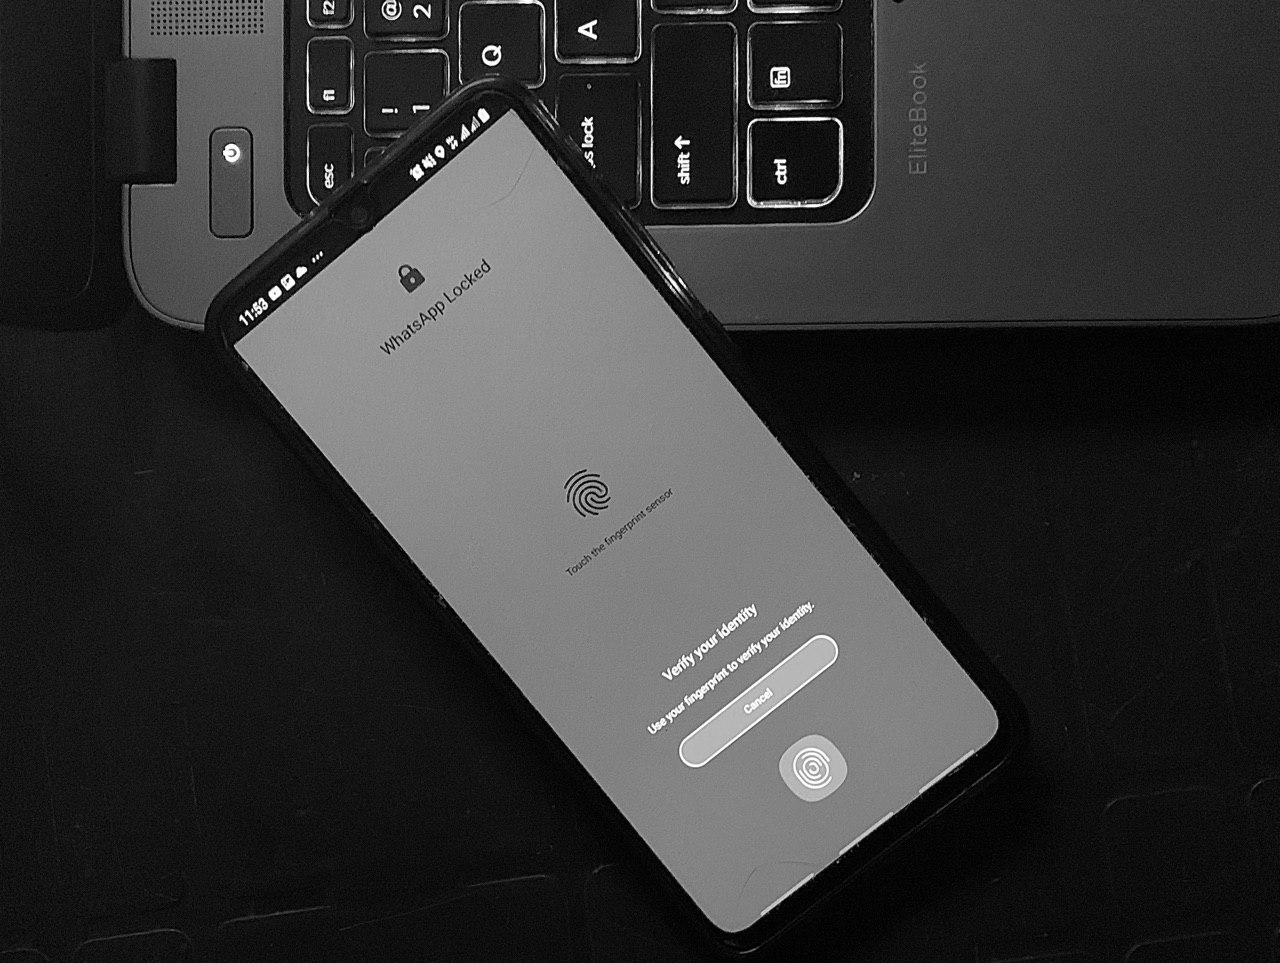 How to create a WhatsApp fingerprint lock on your Android smartphone.